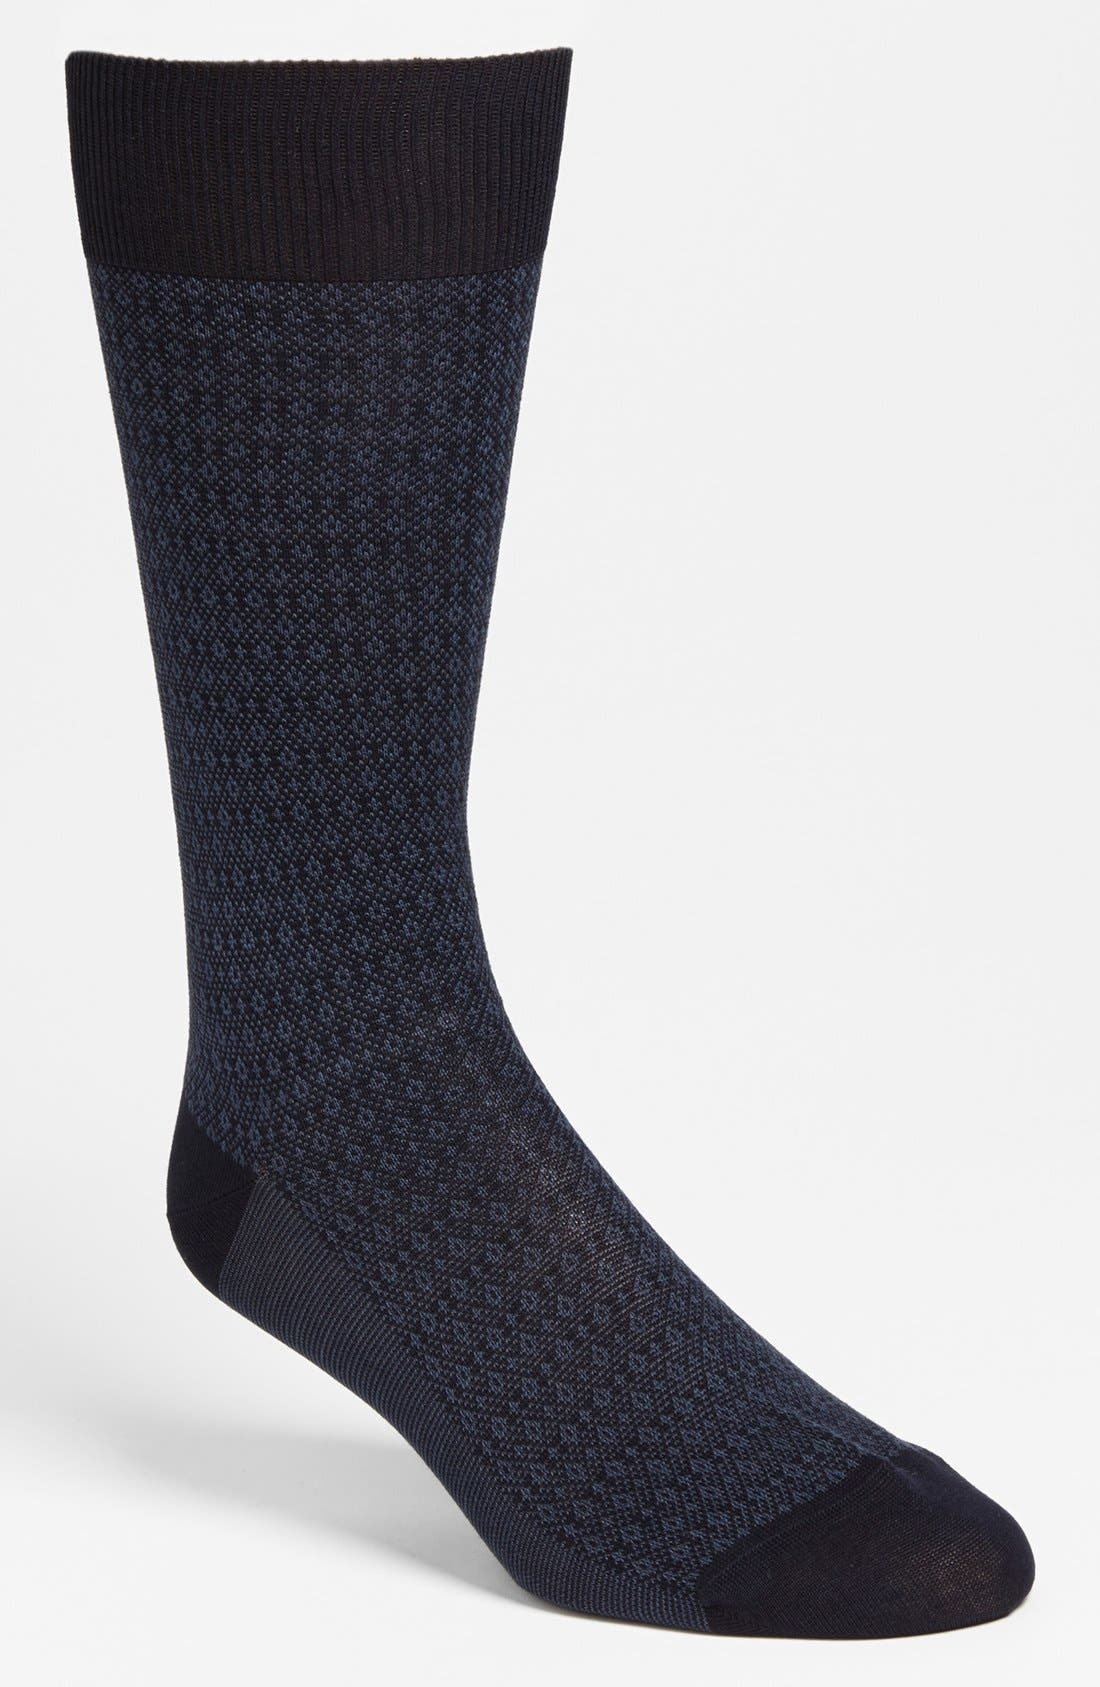 Main Image - Pantherella 'Fenchurch' Birdseye Socks